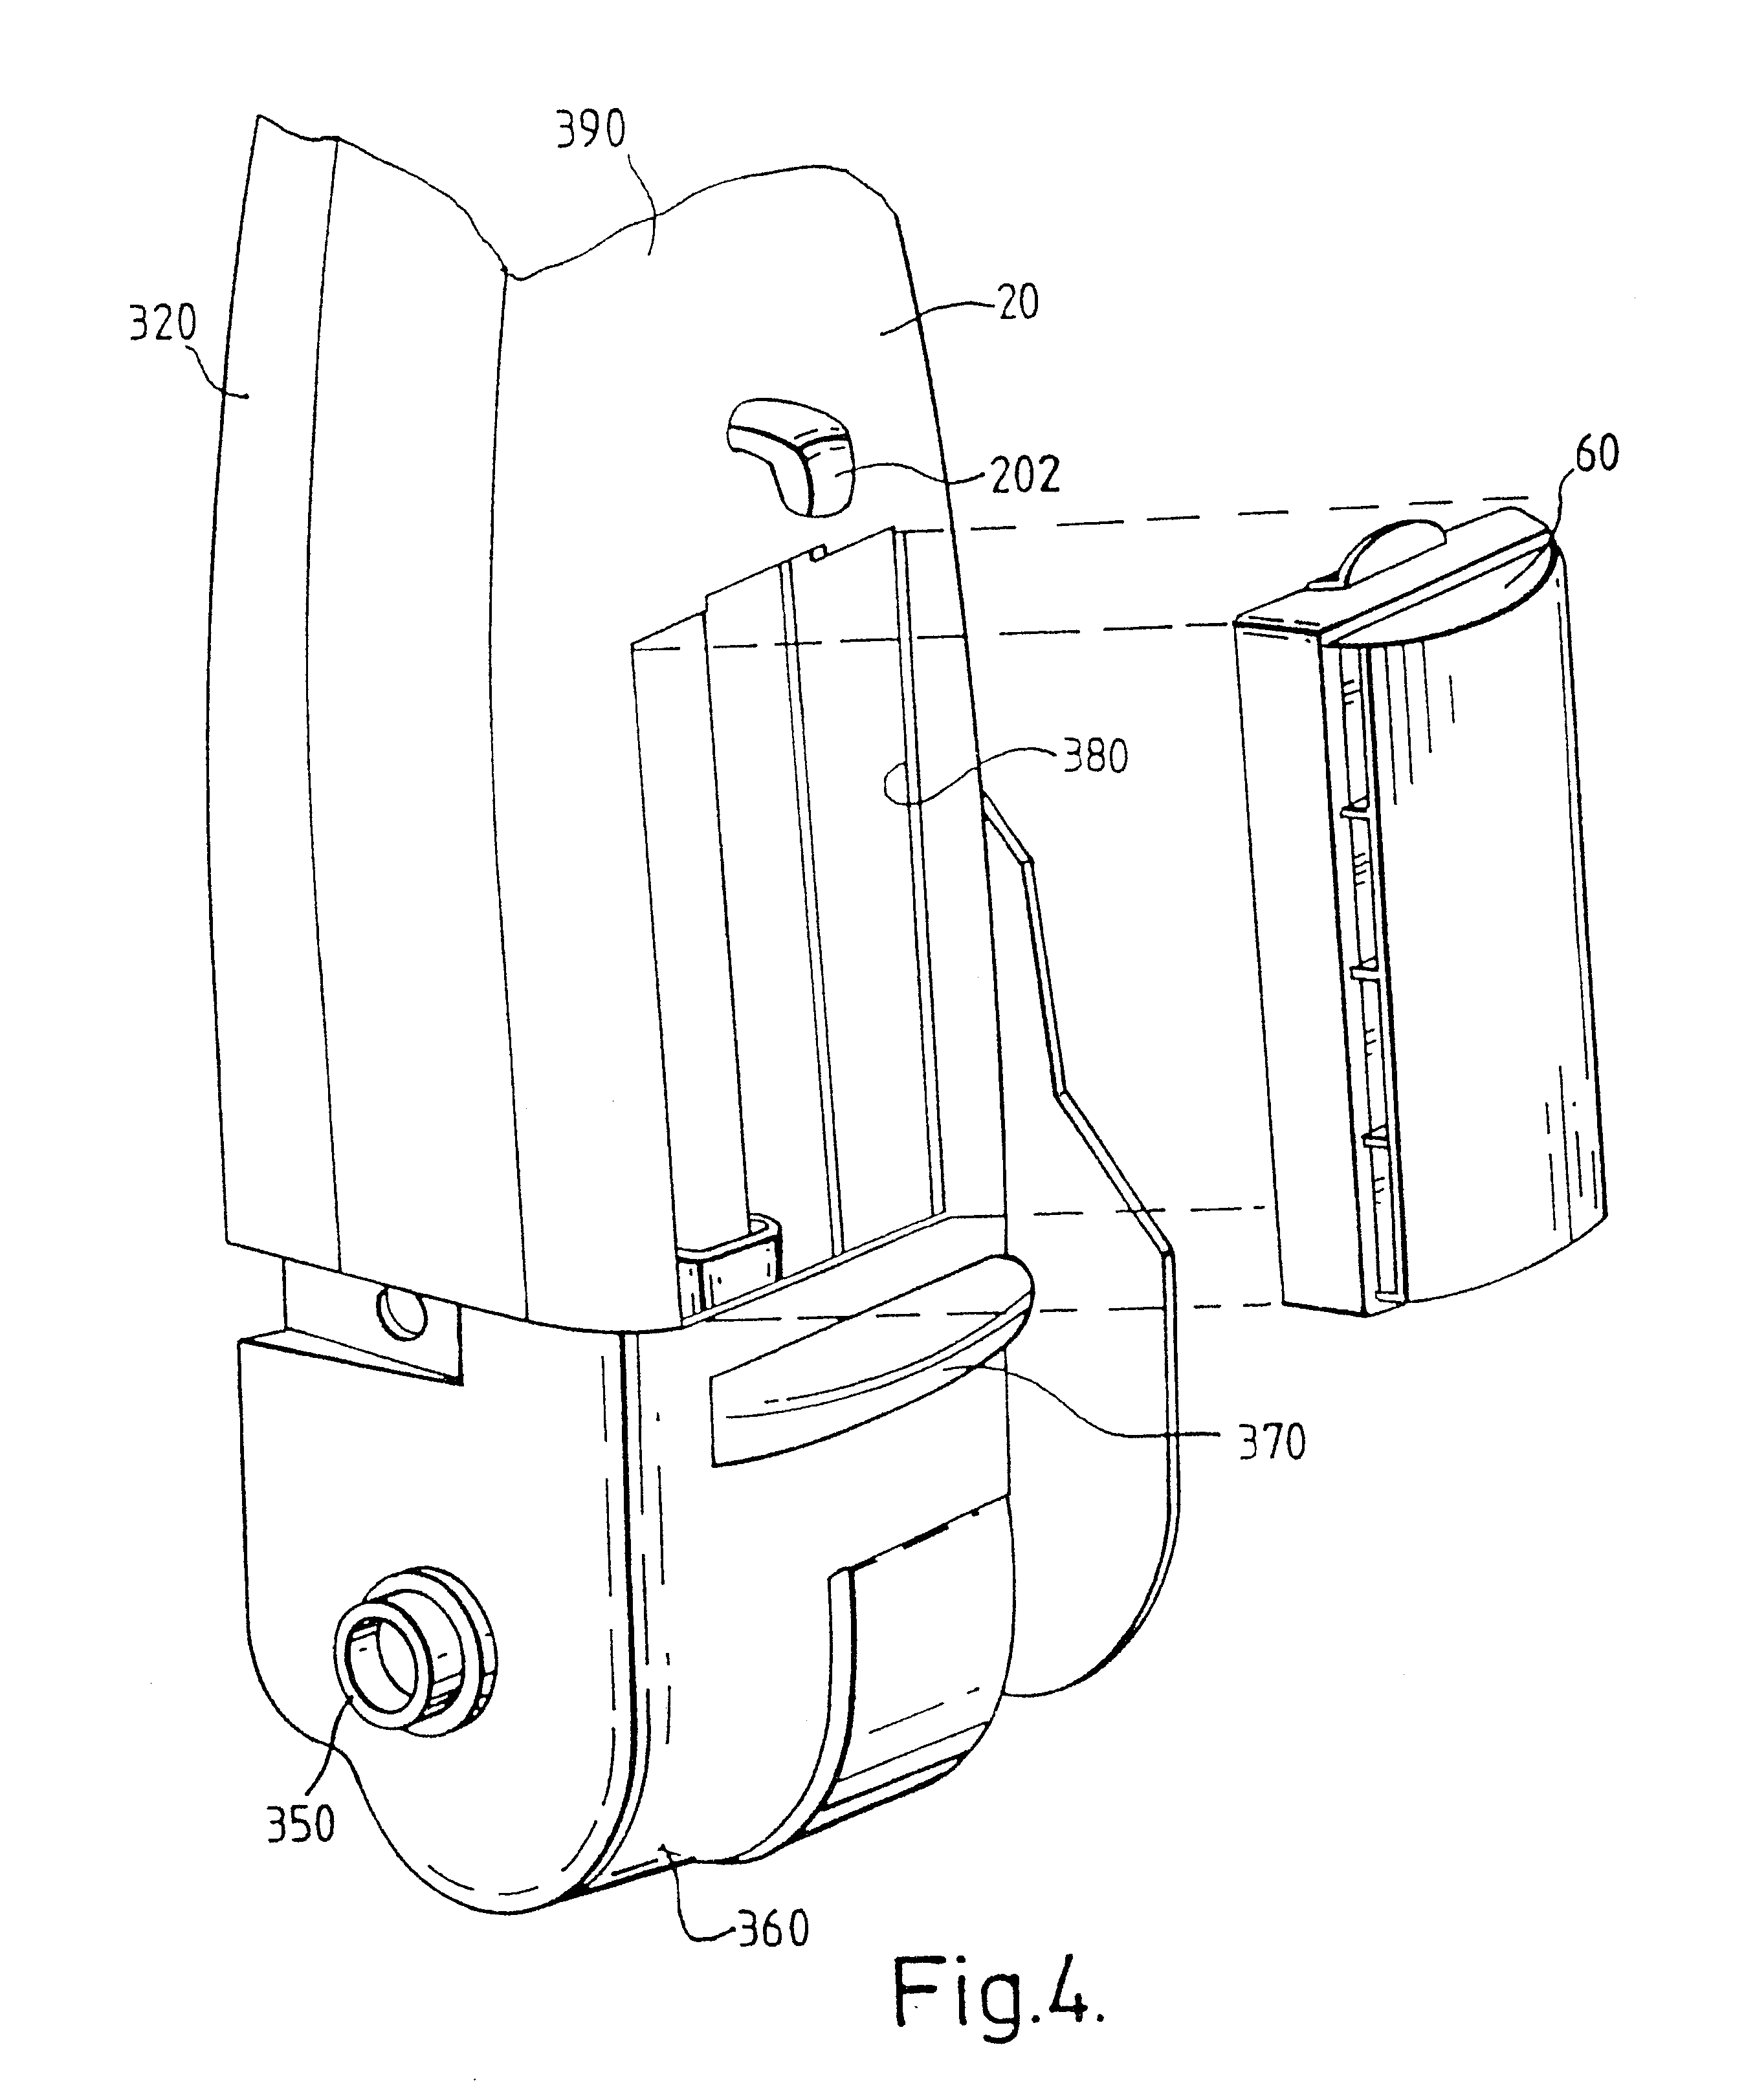 patent us6553611 - vacuum cleaner with thermal cutoff